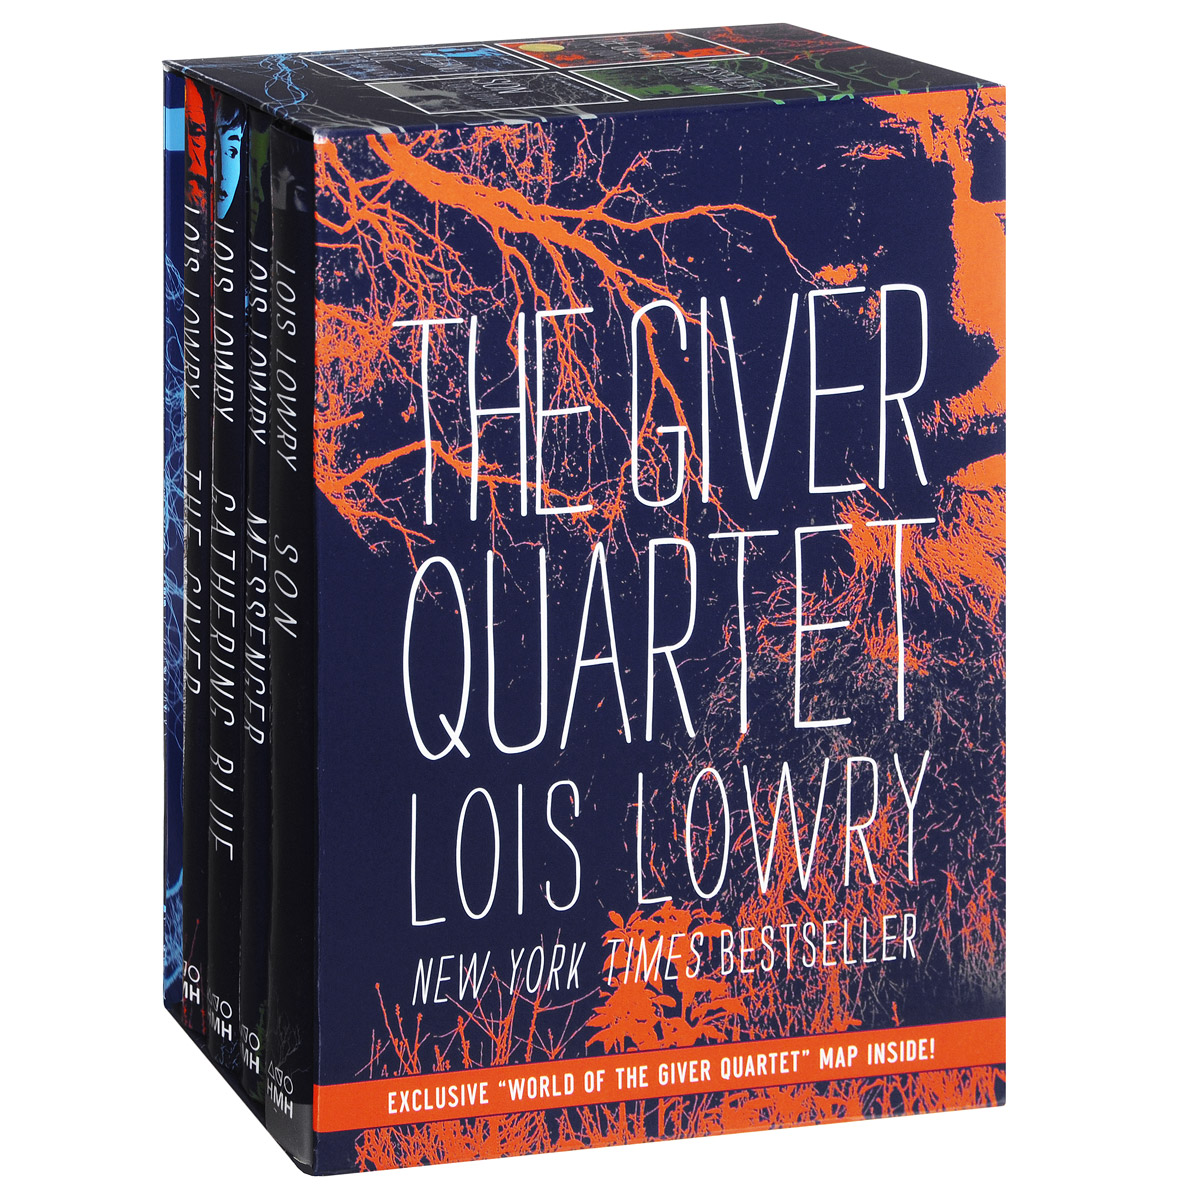 The Giver Quartet (Set of 4 Books)